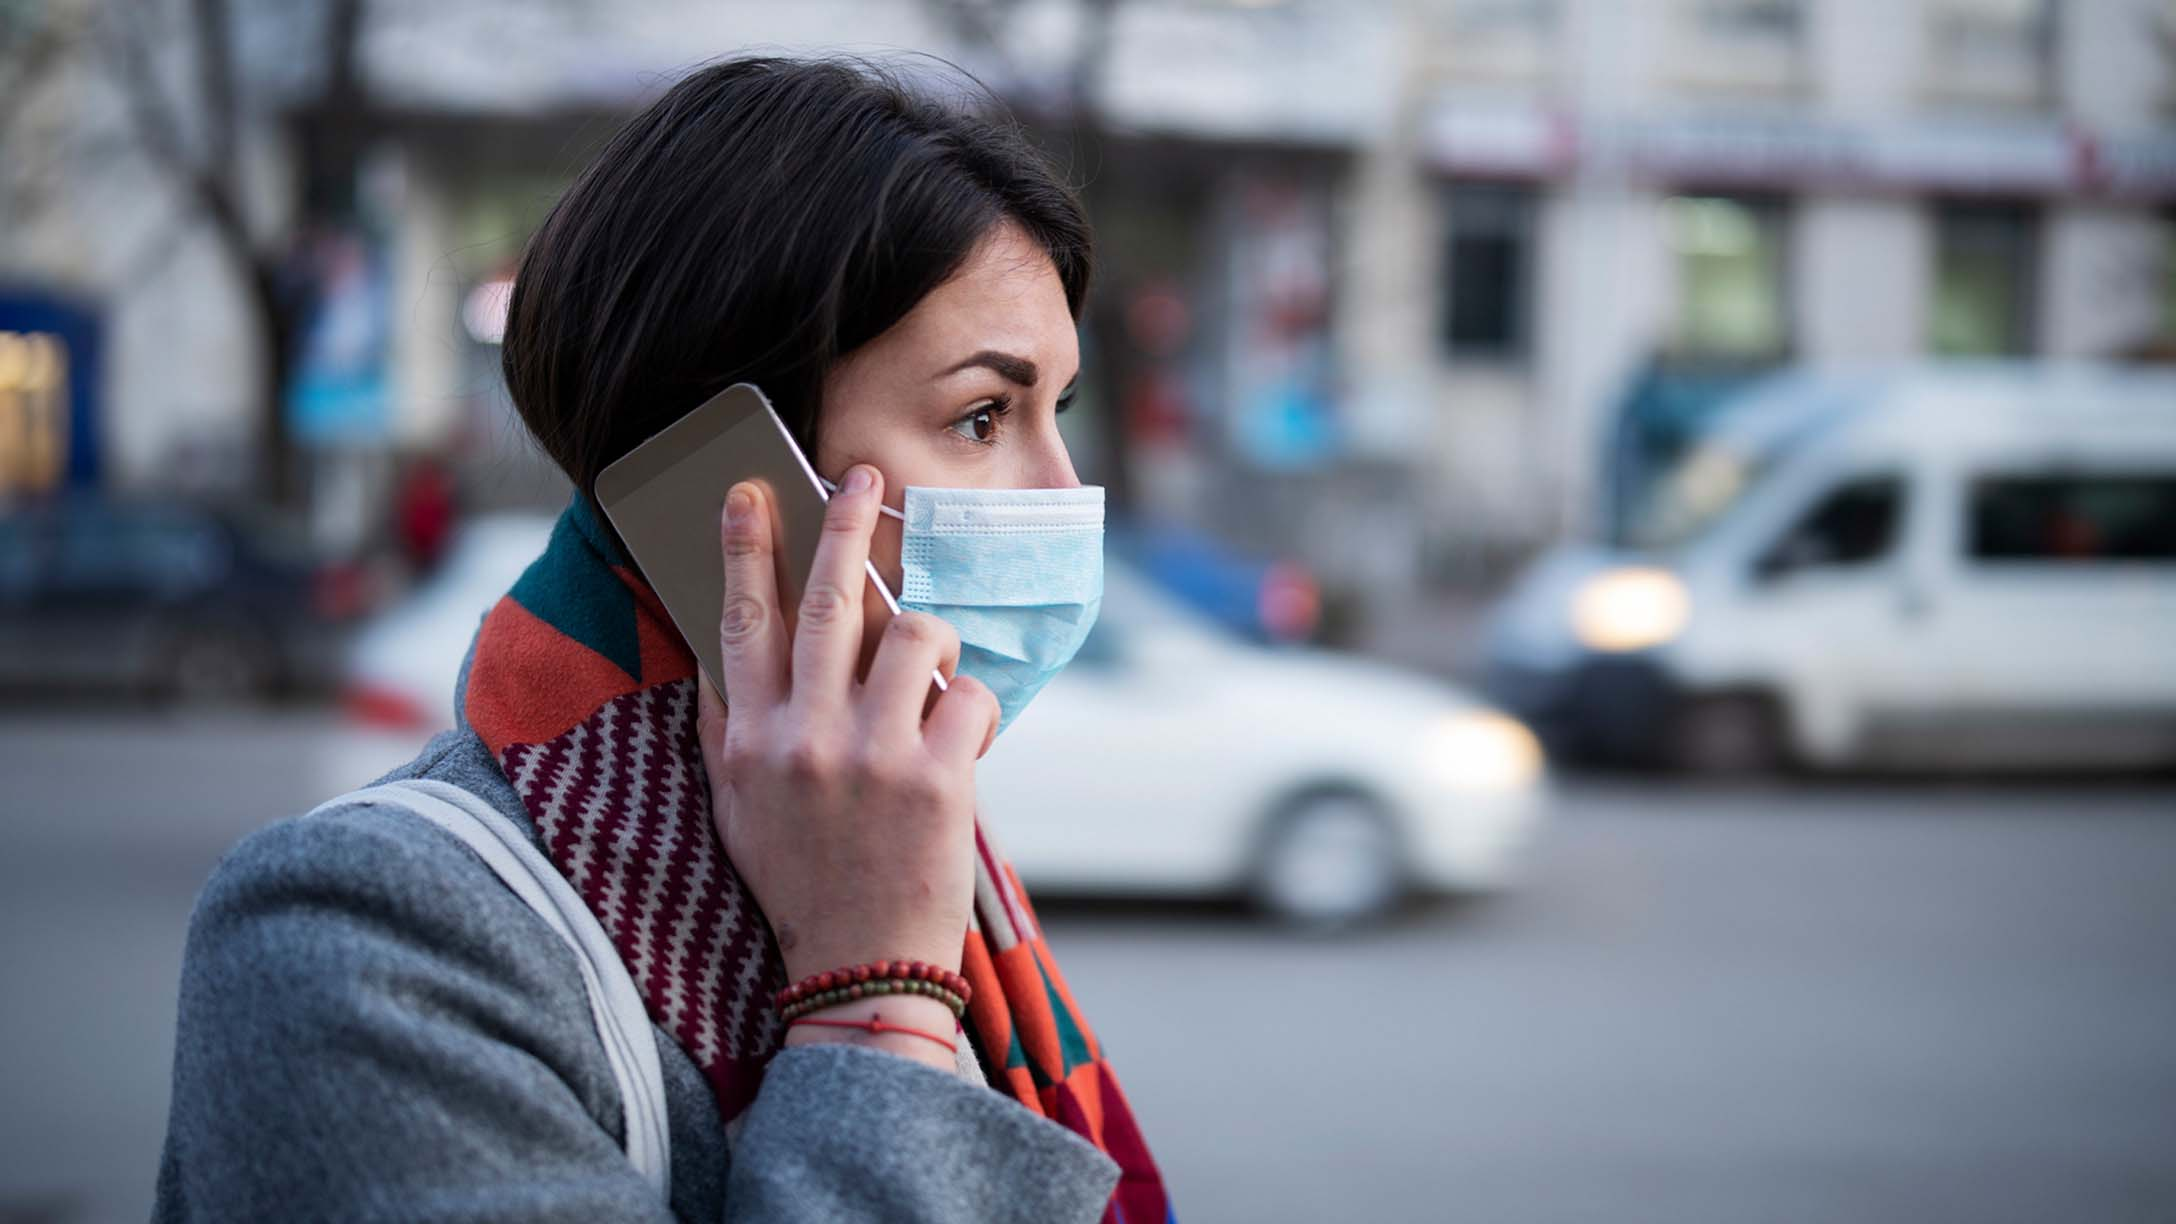 Woman in a mask on a cell phone